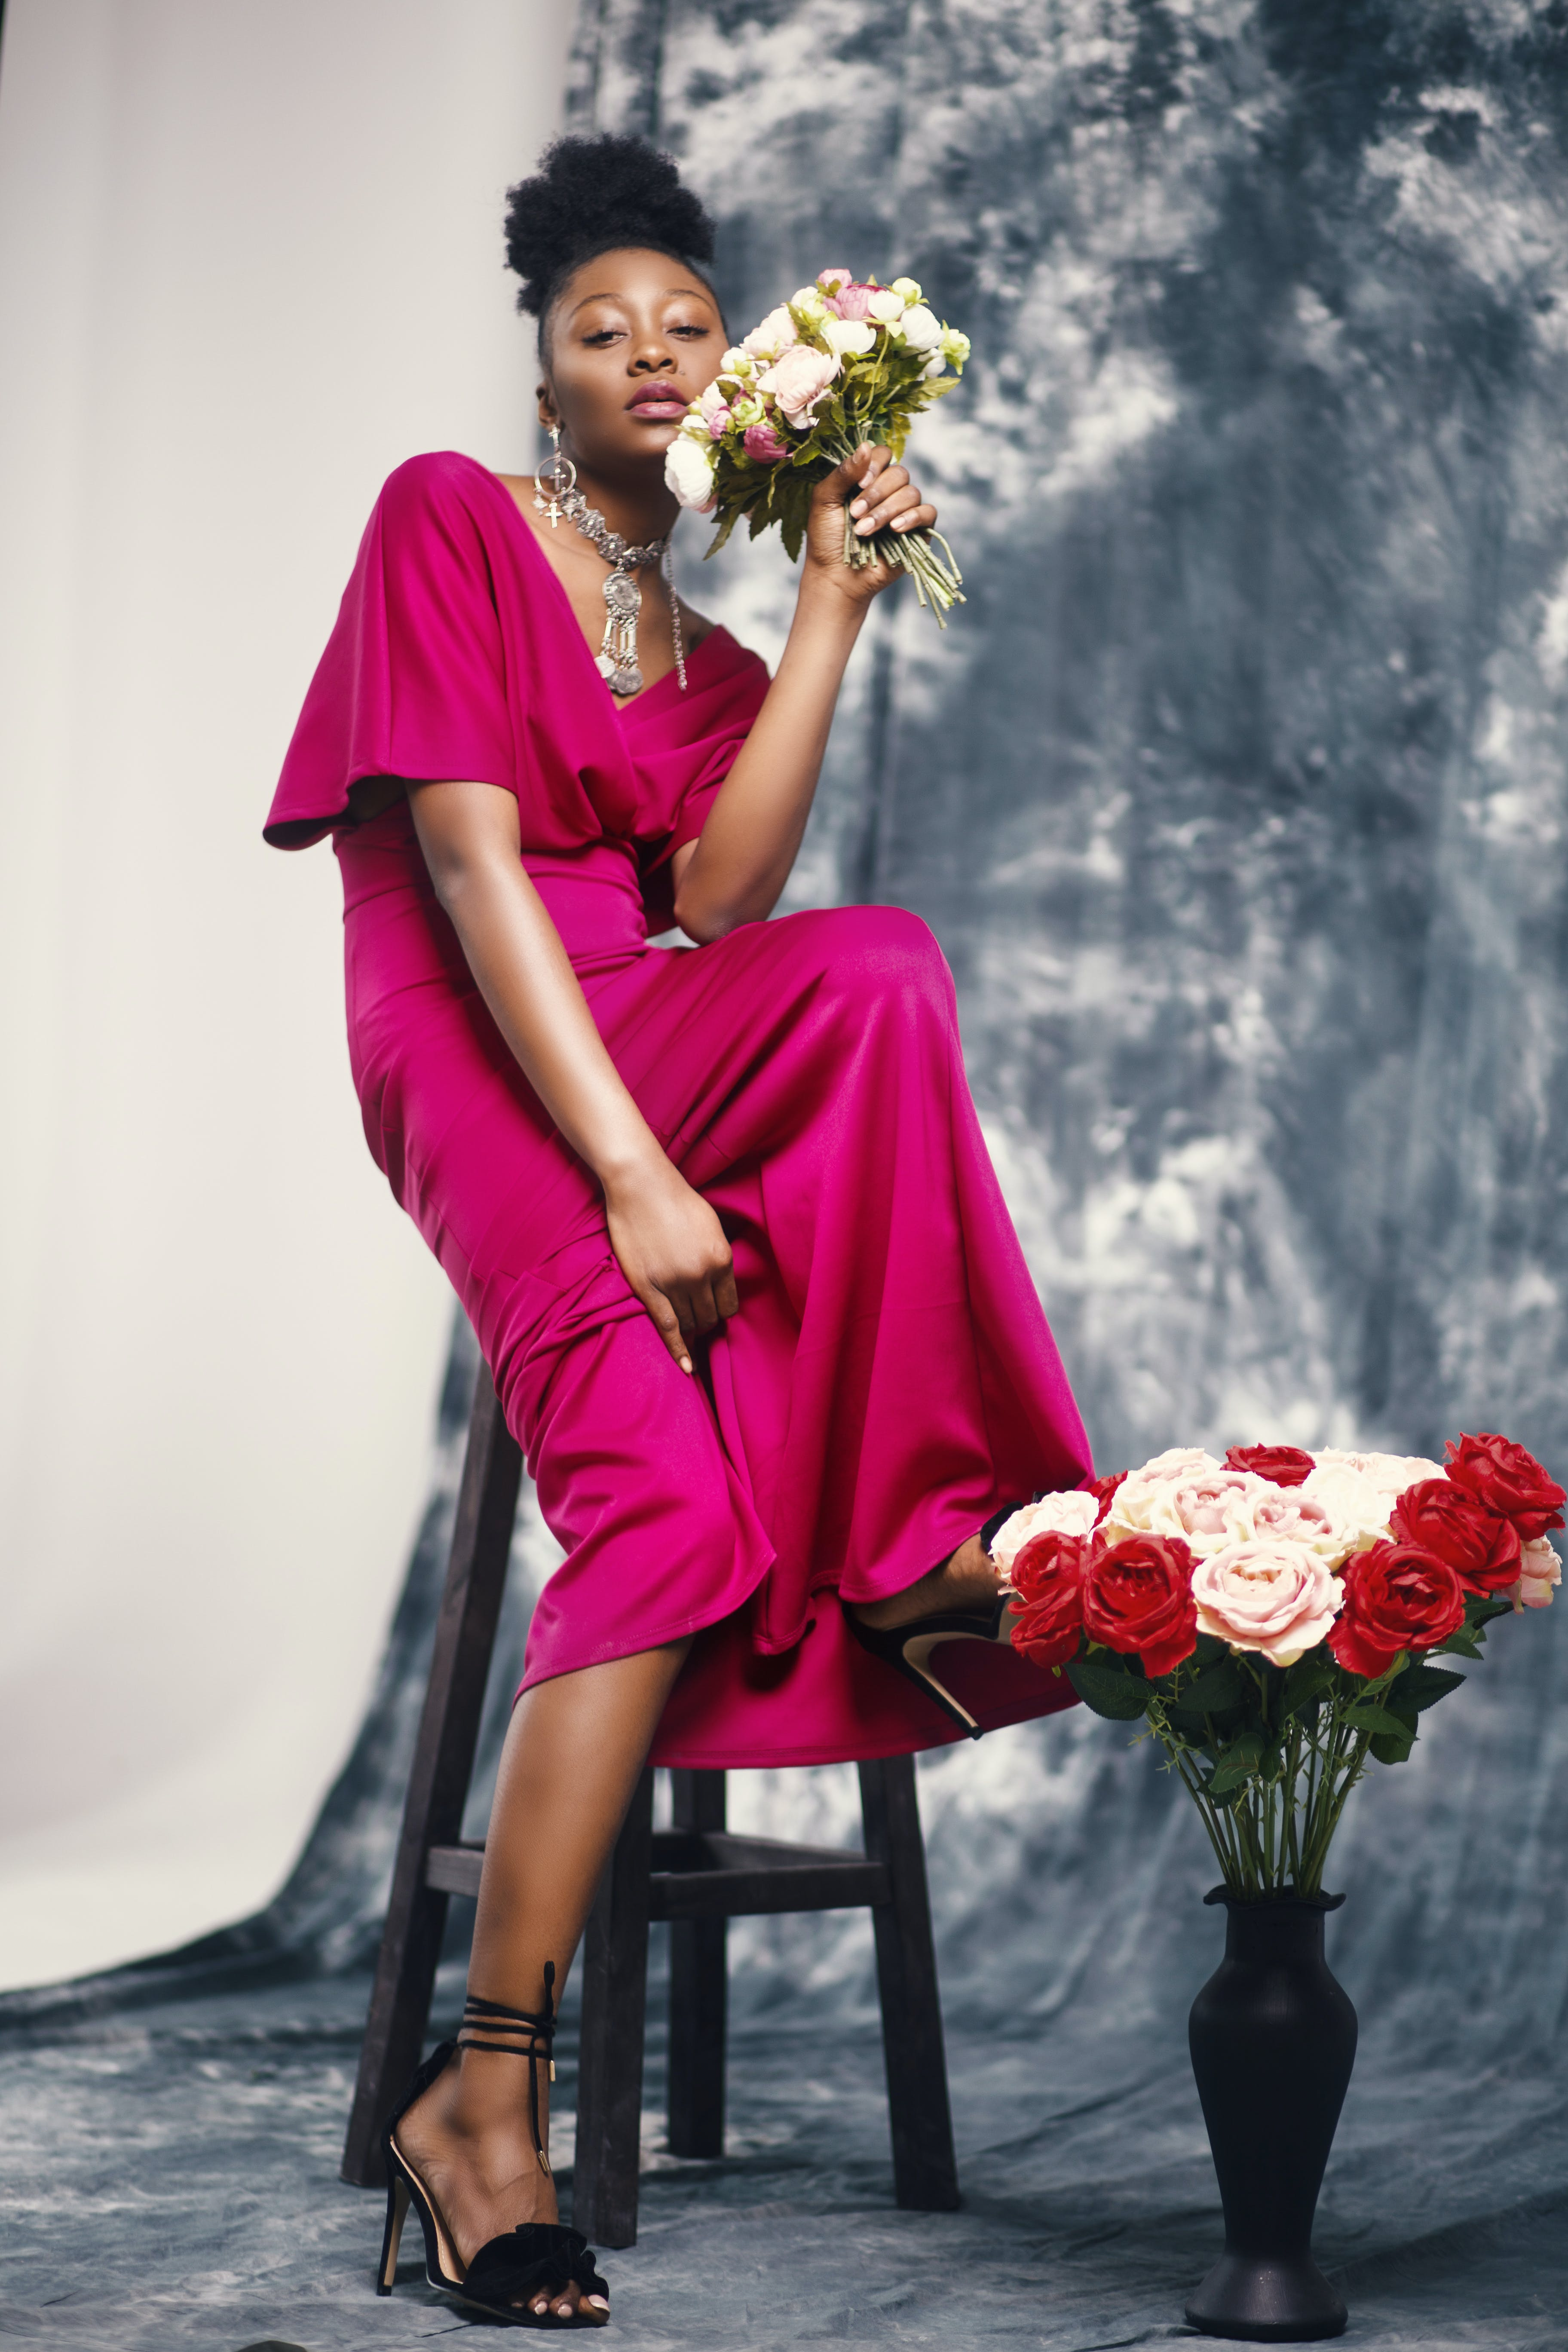 Woman in Pink Maxi Dress Holding Bouquet of Flowers